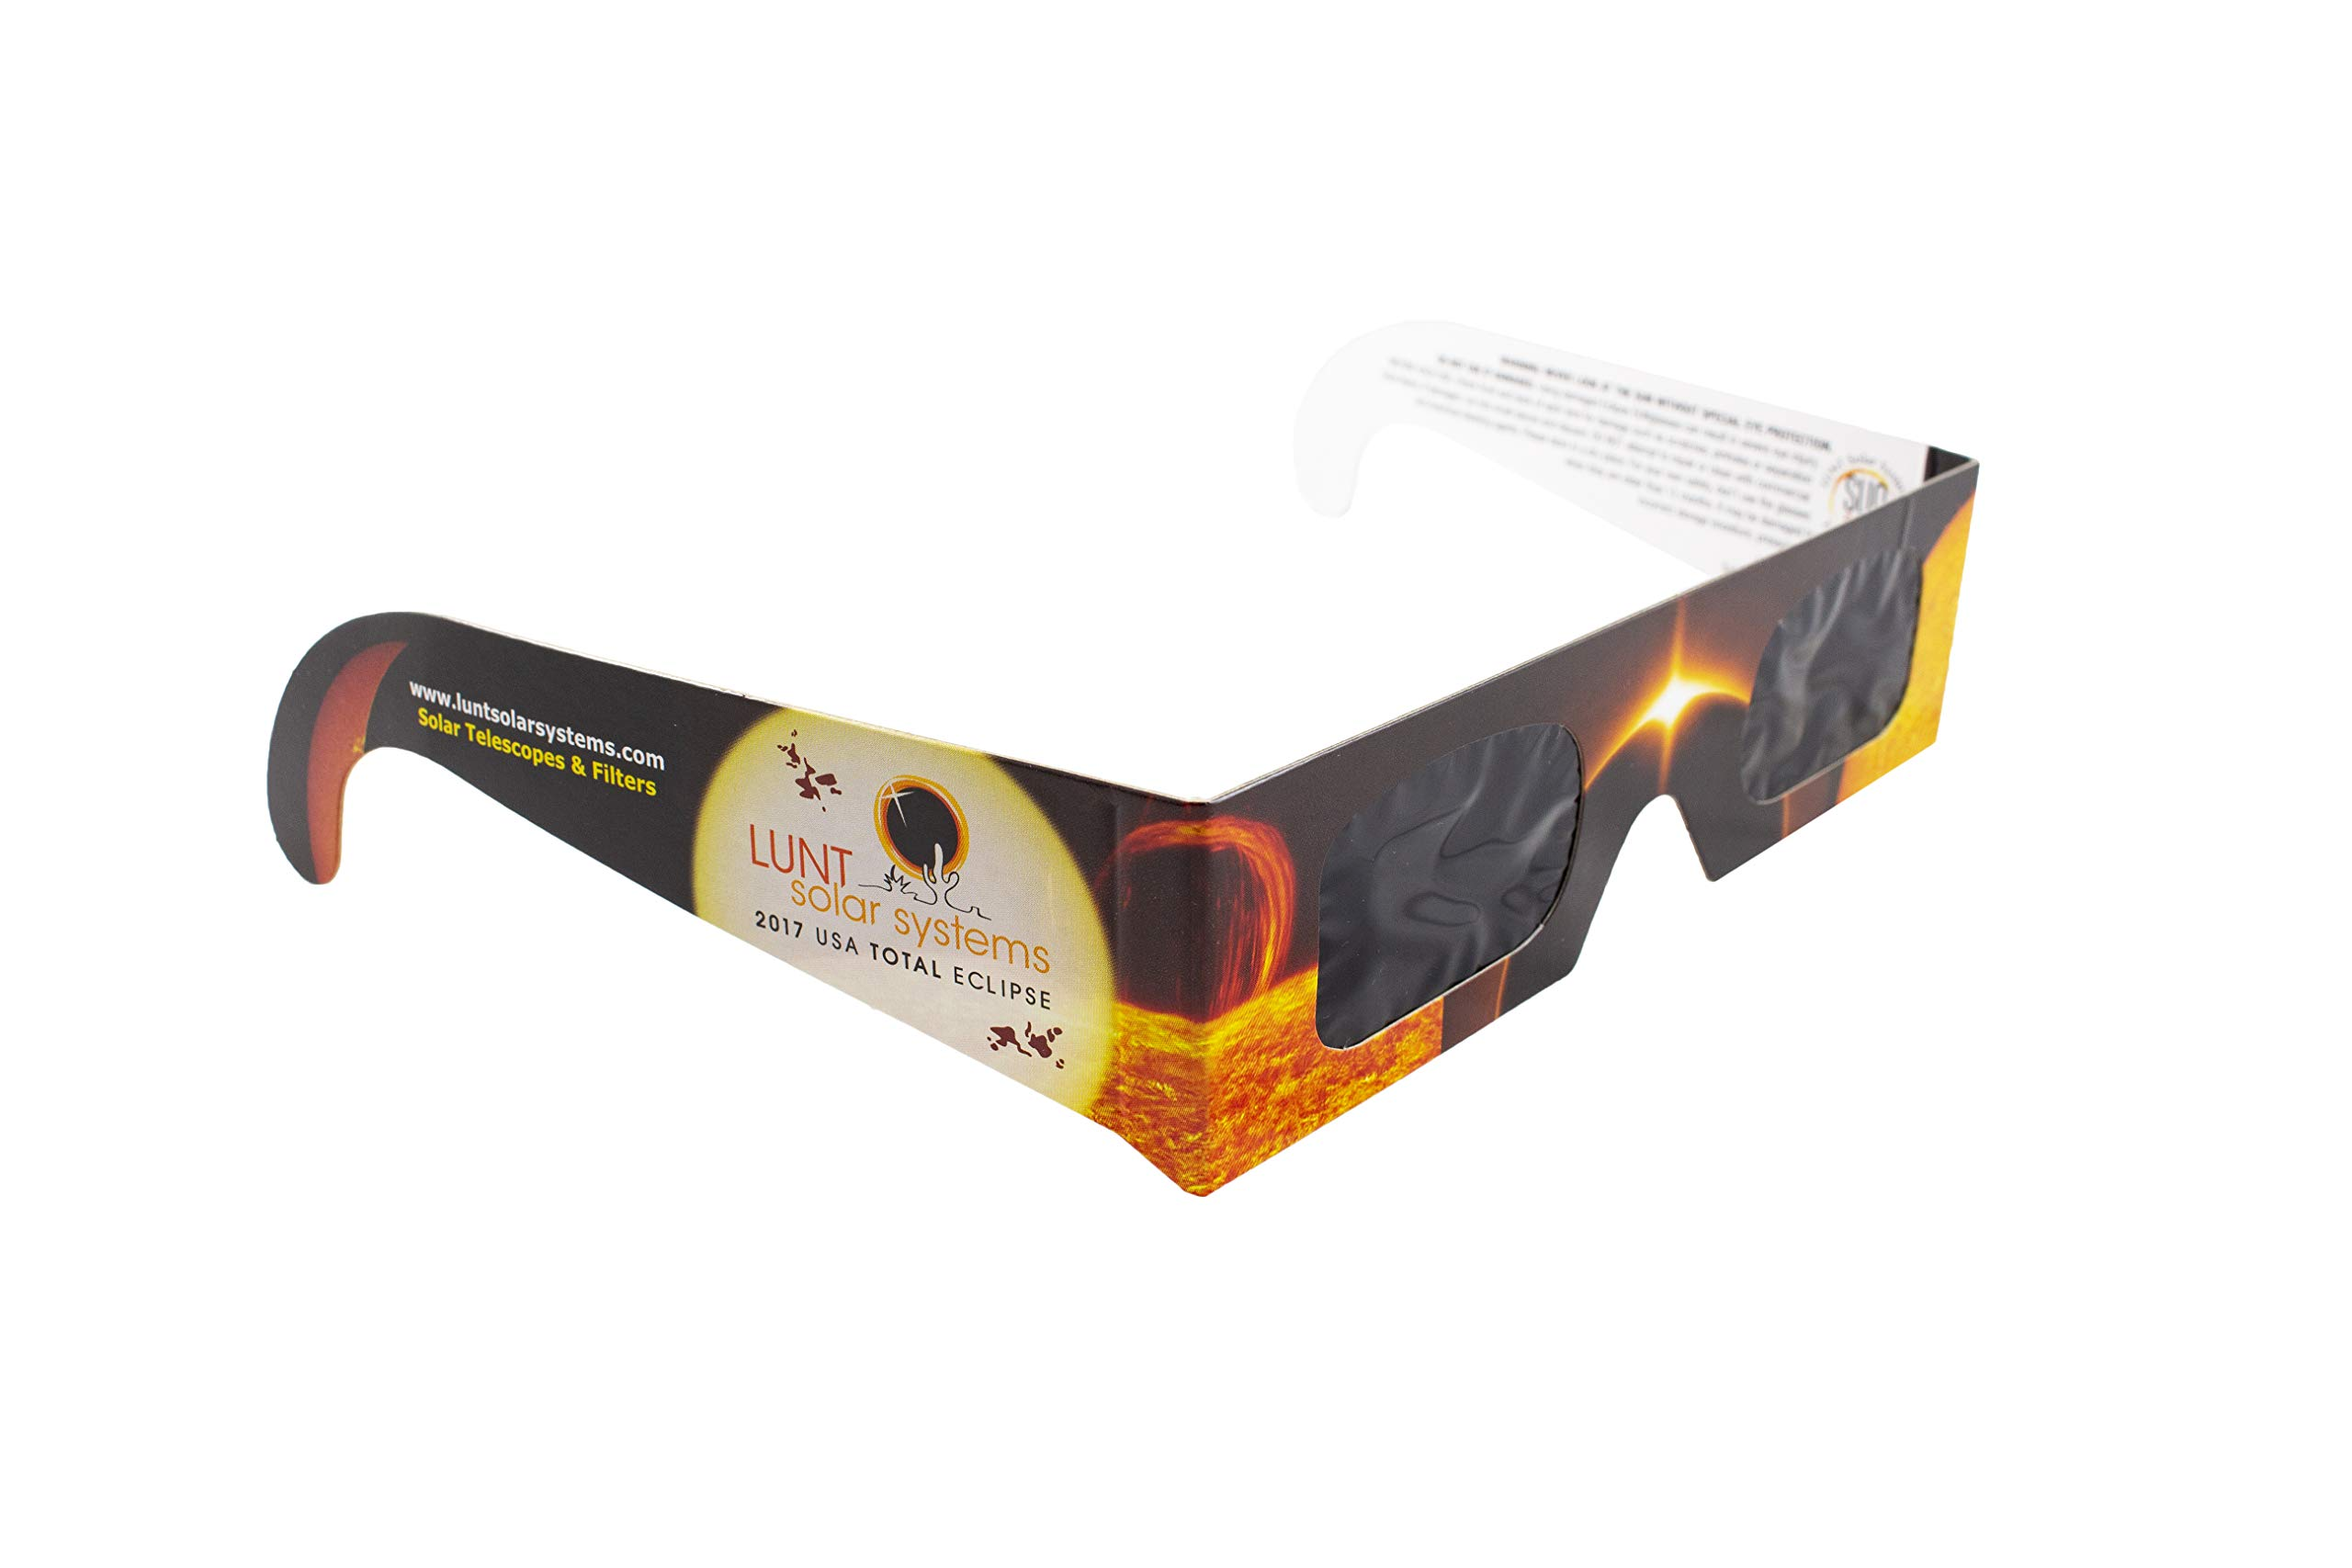 Lunt Solar Systems Solar Eclipse Glasses 5 Pack Premium Ce Iso Certified Safe Shades For Direct Sun Viewing Protect Eyes From Harmful Rays During Solar Eclipse Amazon Com